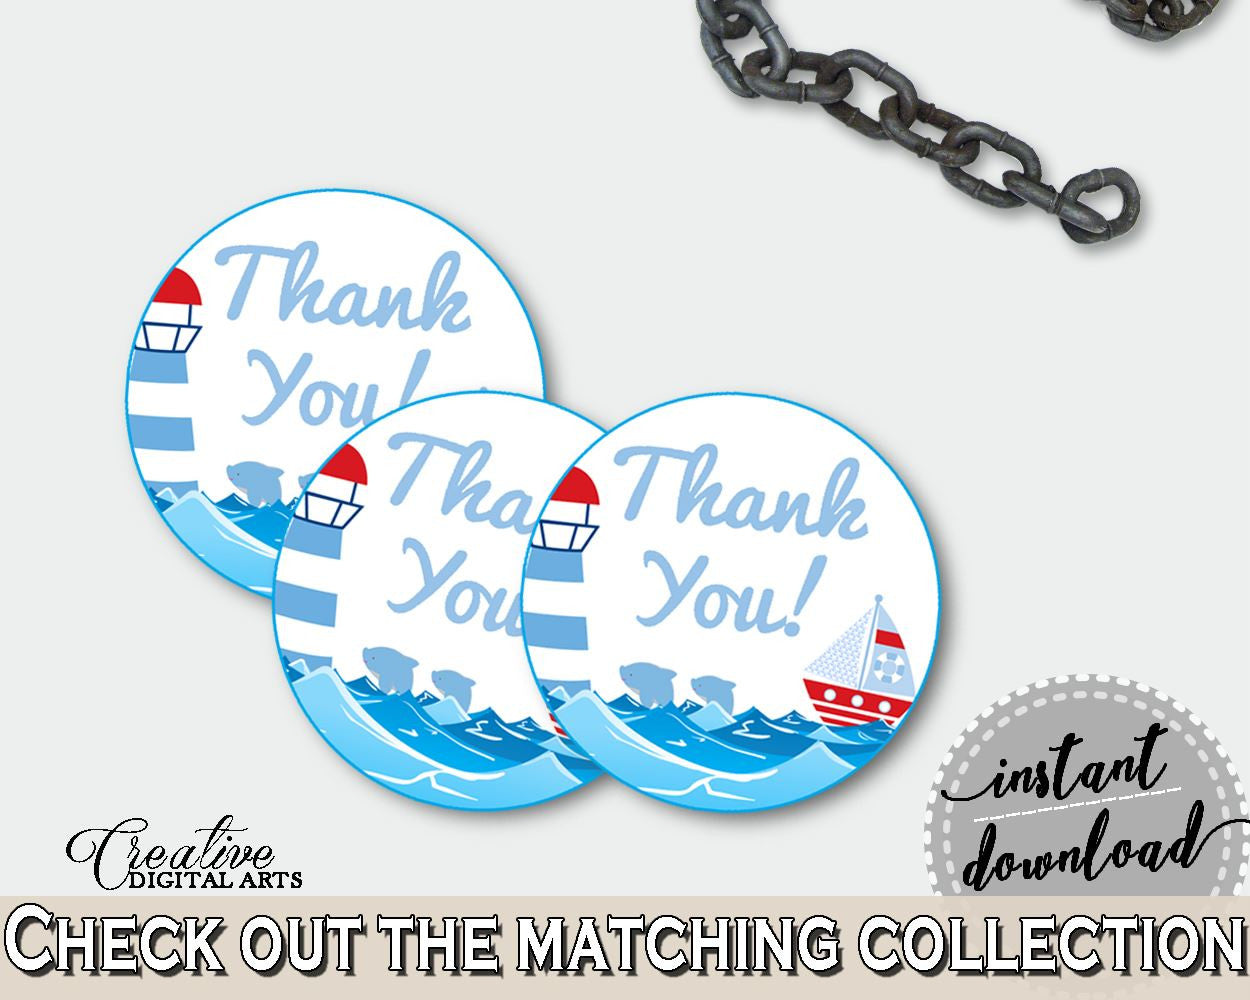 Round Tags Baby Shower Round Tags Nautical Baby Shower Round Tags Baby Shower Nautical Round Tags Blue Red prints, digital print - DHTQT - Digital Product